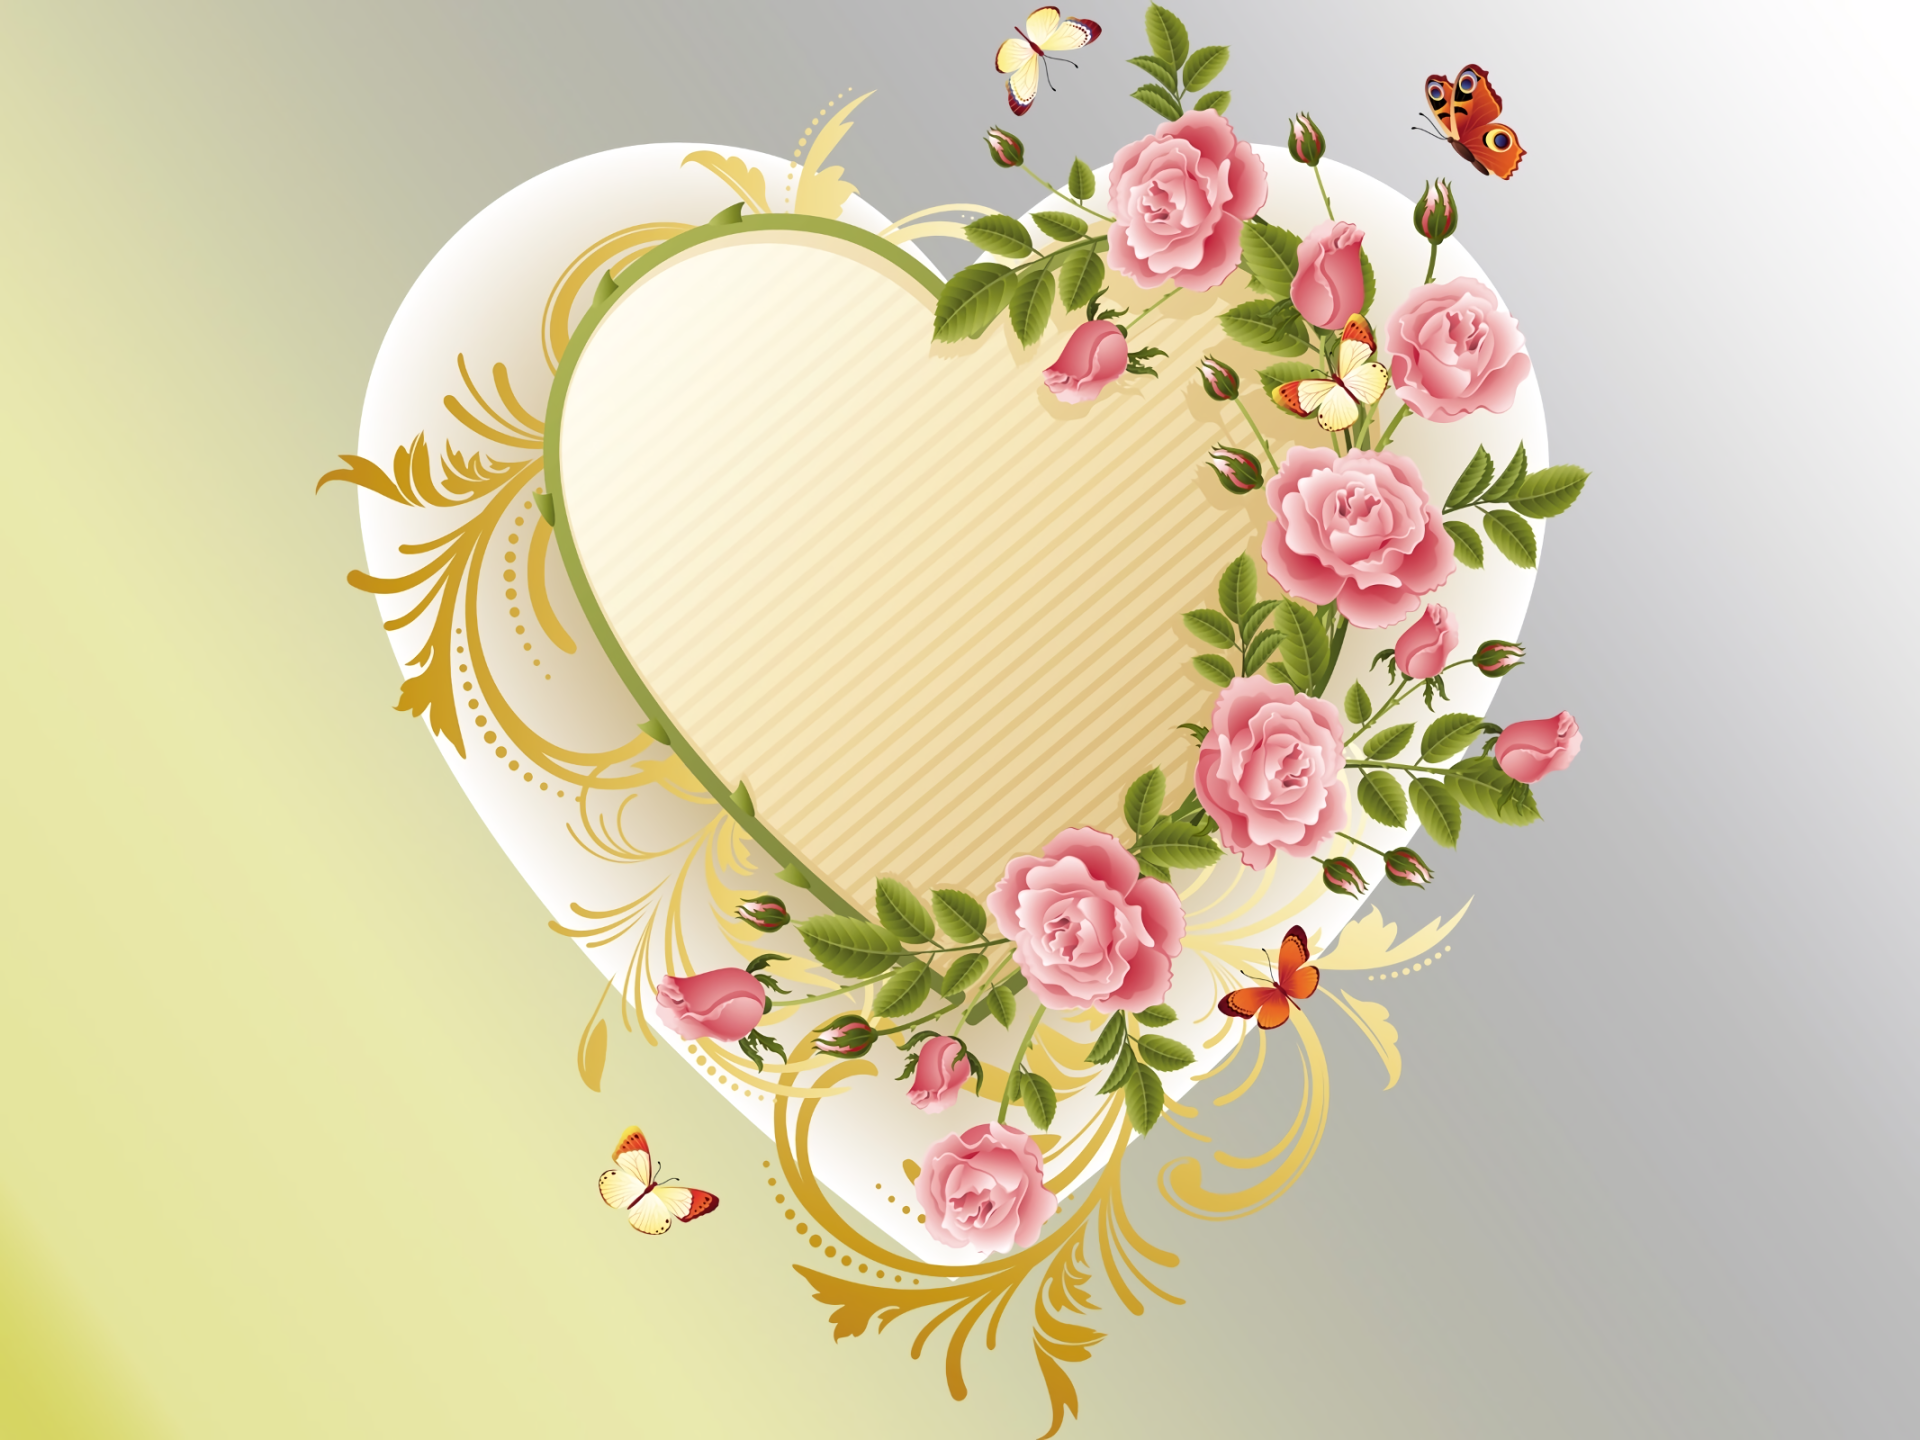 Wallpapers ID:702188